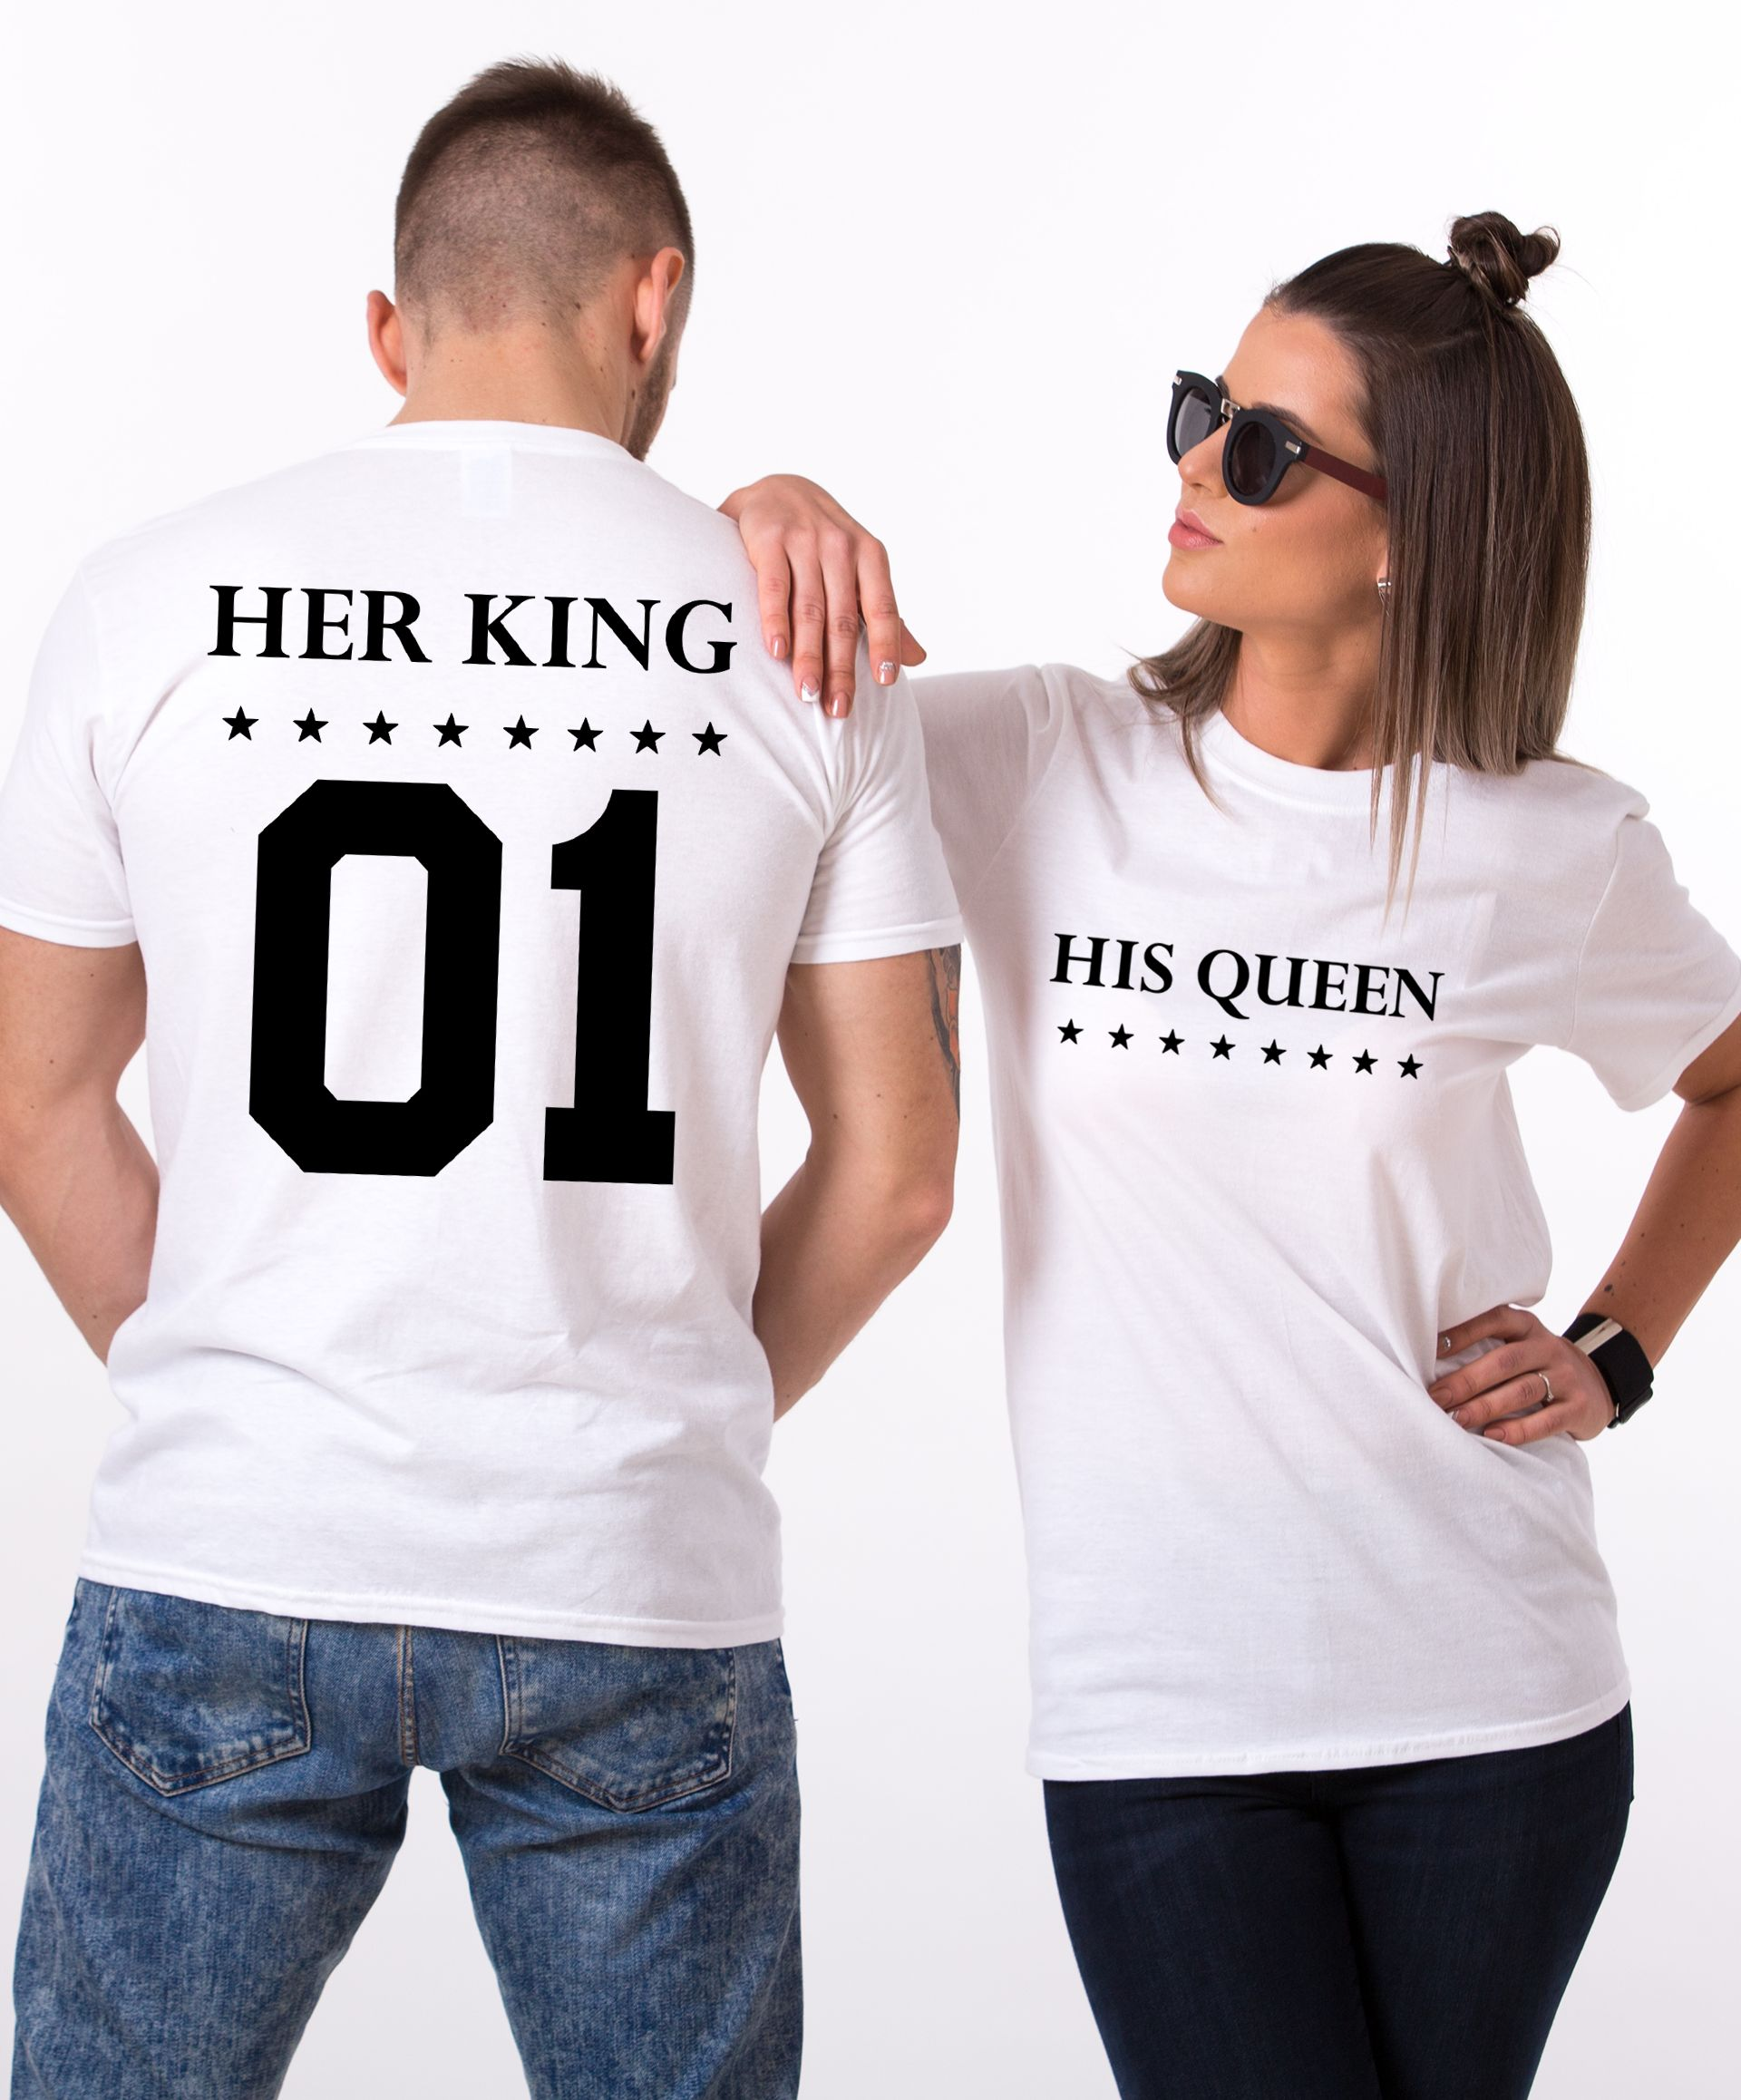 879d778f098 Her King His Queen, Double Sided, Matching Couples Shirts